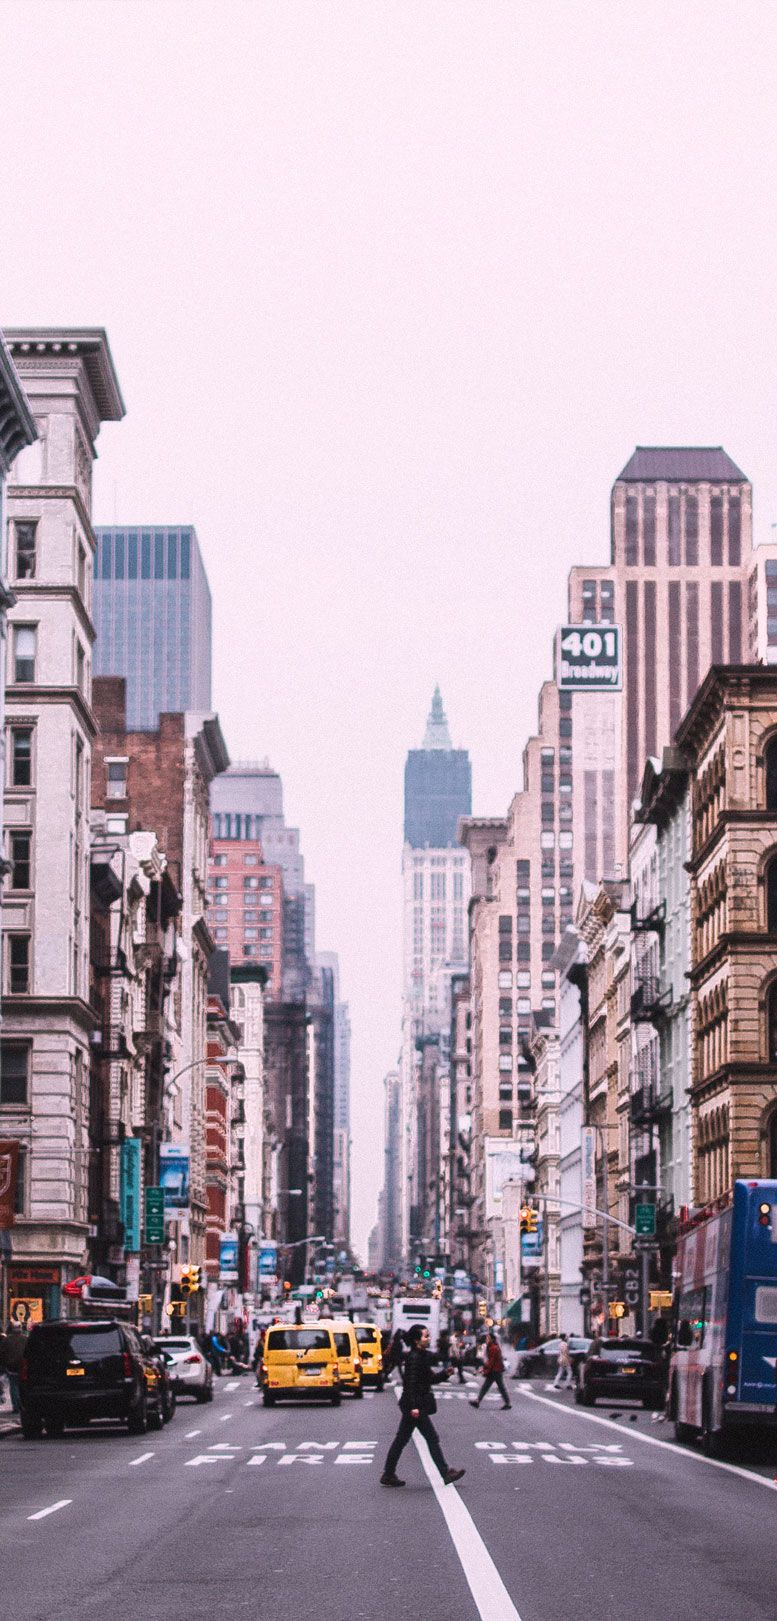 20 Awesome City iPhone wallpapers – Free iPhone wallpapers